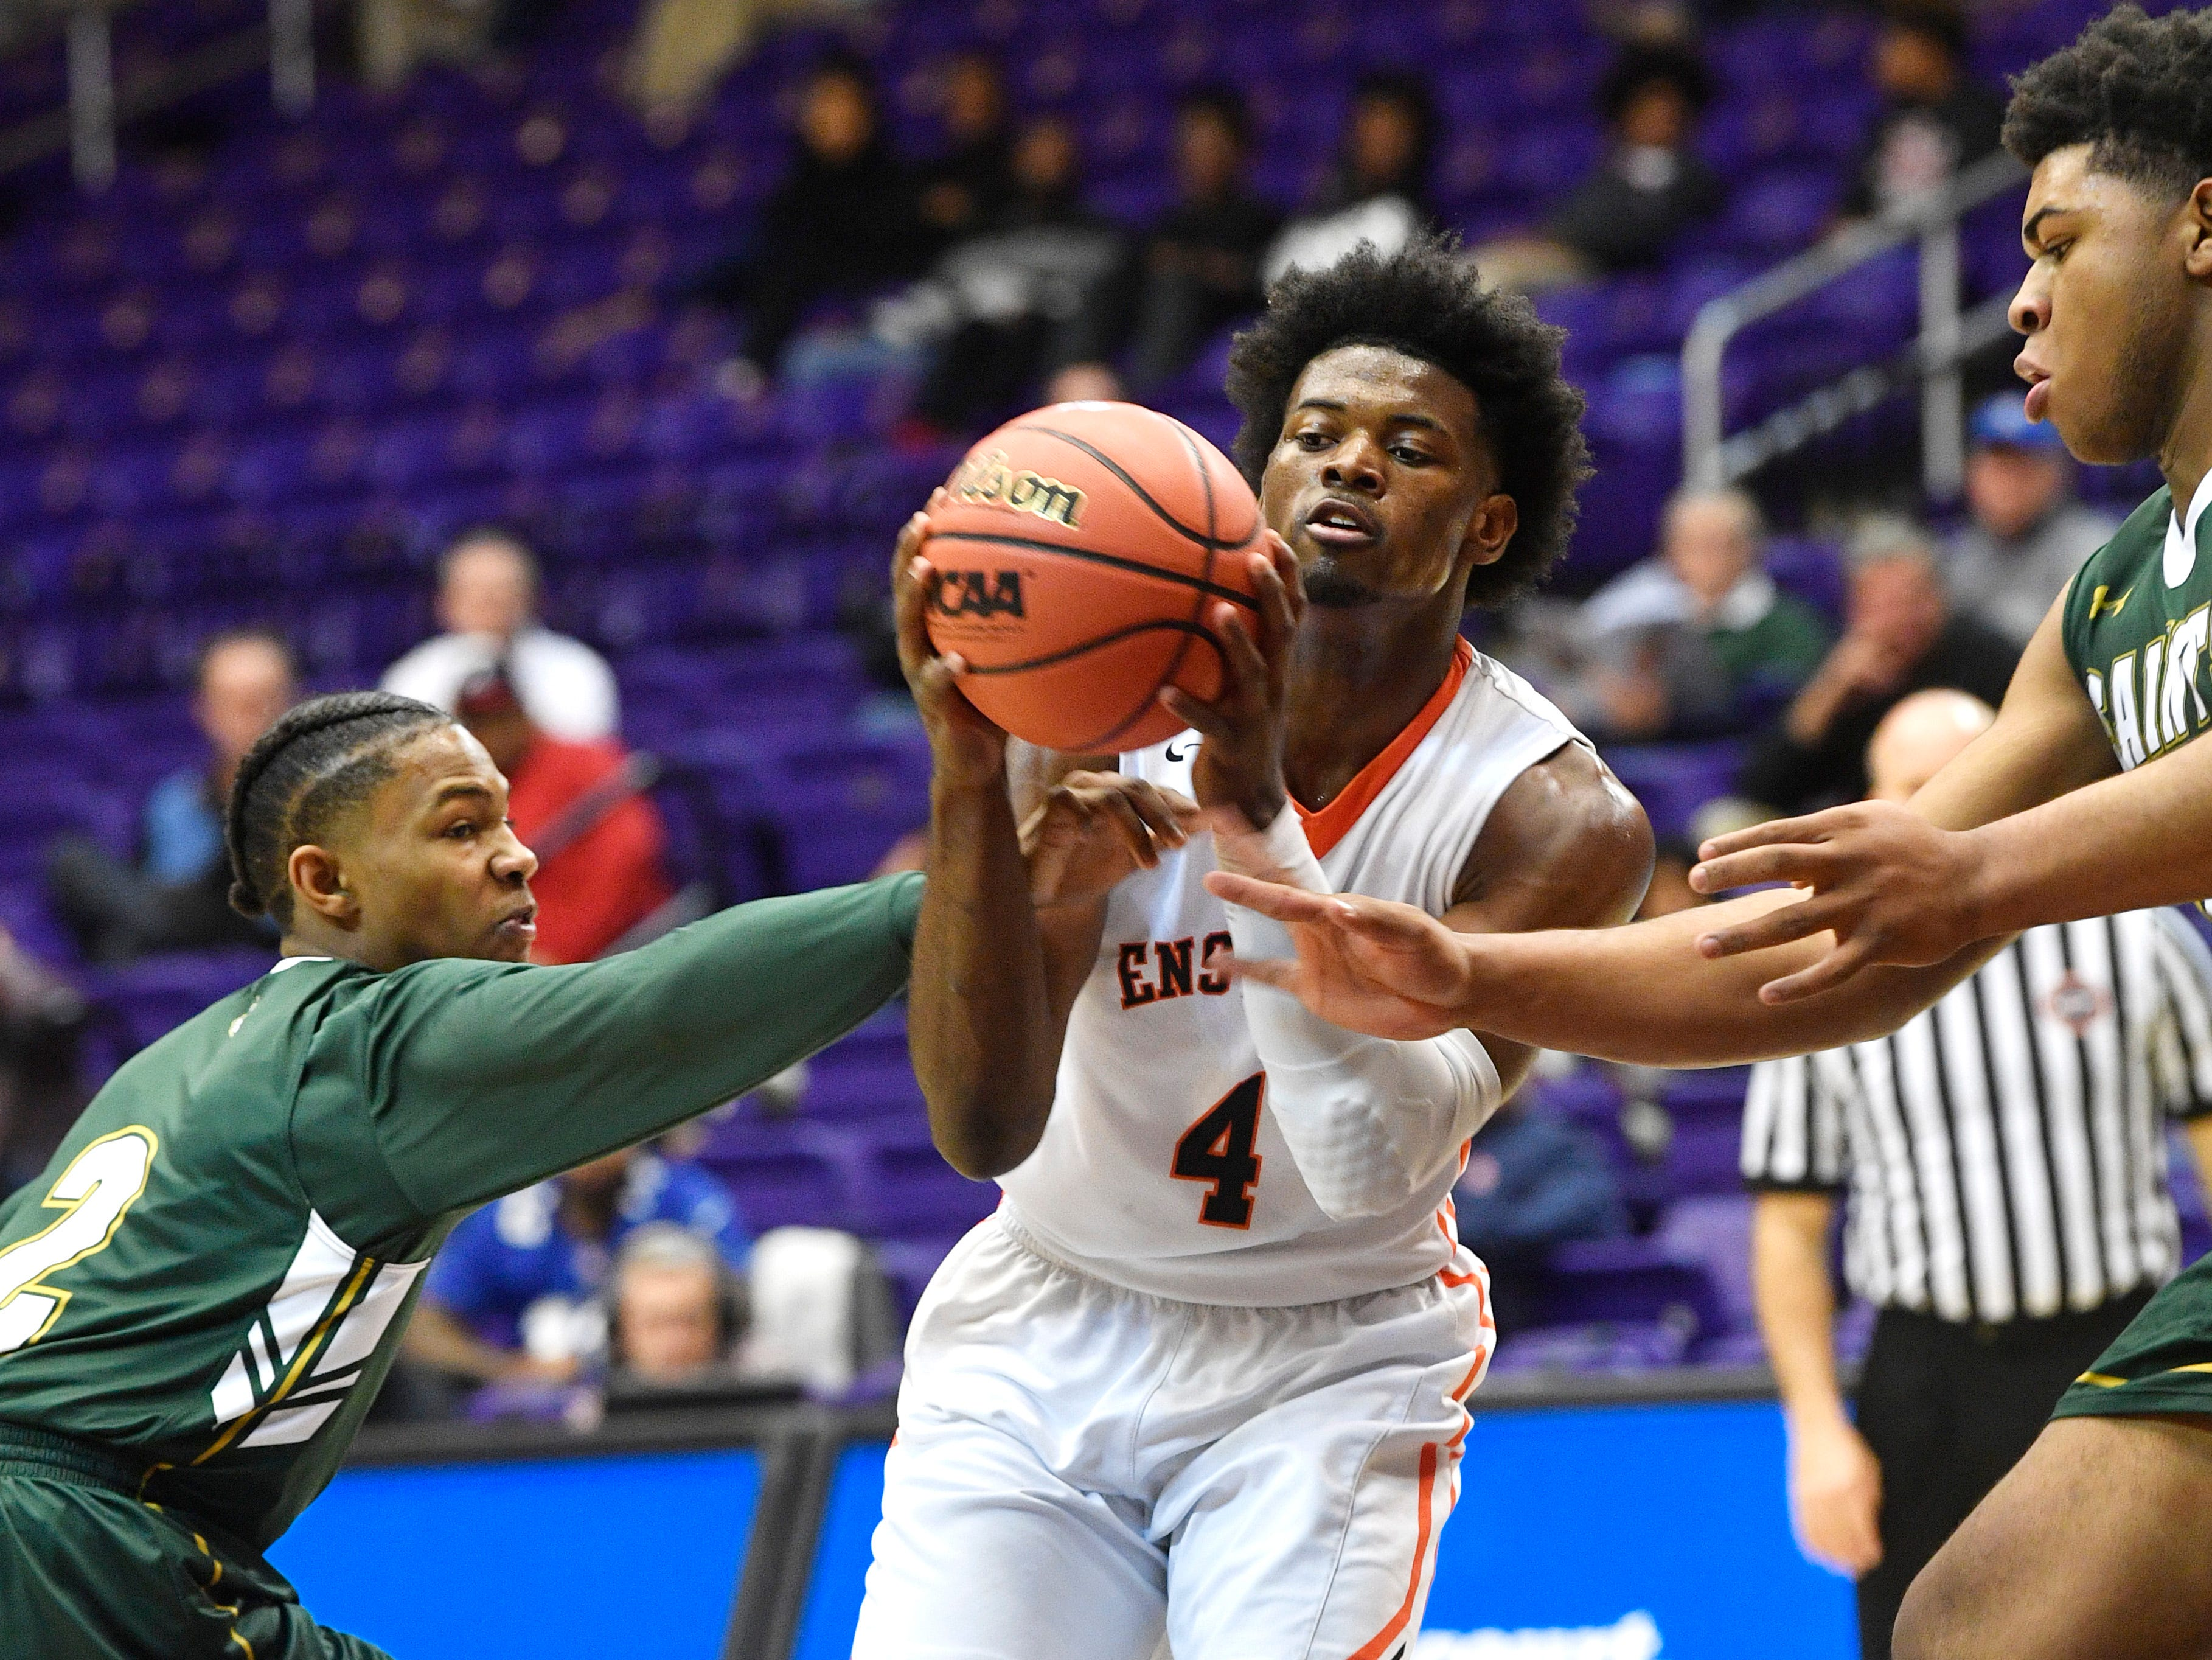 Keshawn Lawrence weaves in heavy traffic as Ensworth plays Briarcrest Christian in the Division II- AA semifinals at Allen Arena  Thursday, Feb. 28, 2019, in Nashville, Tenn.